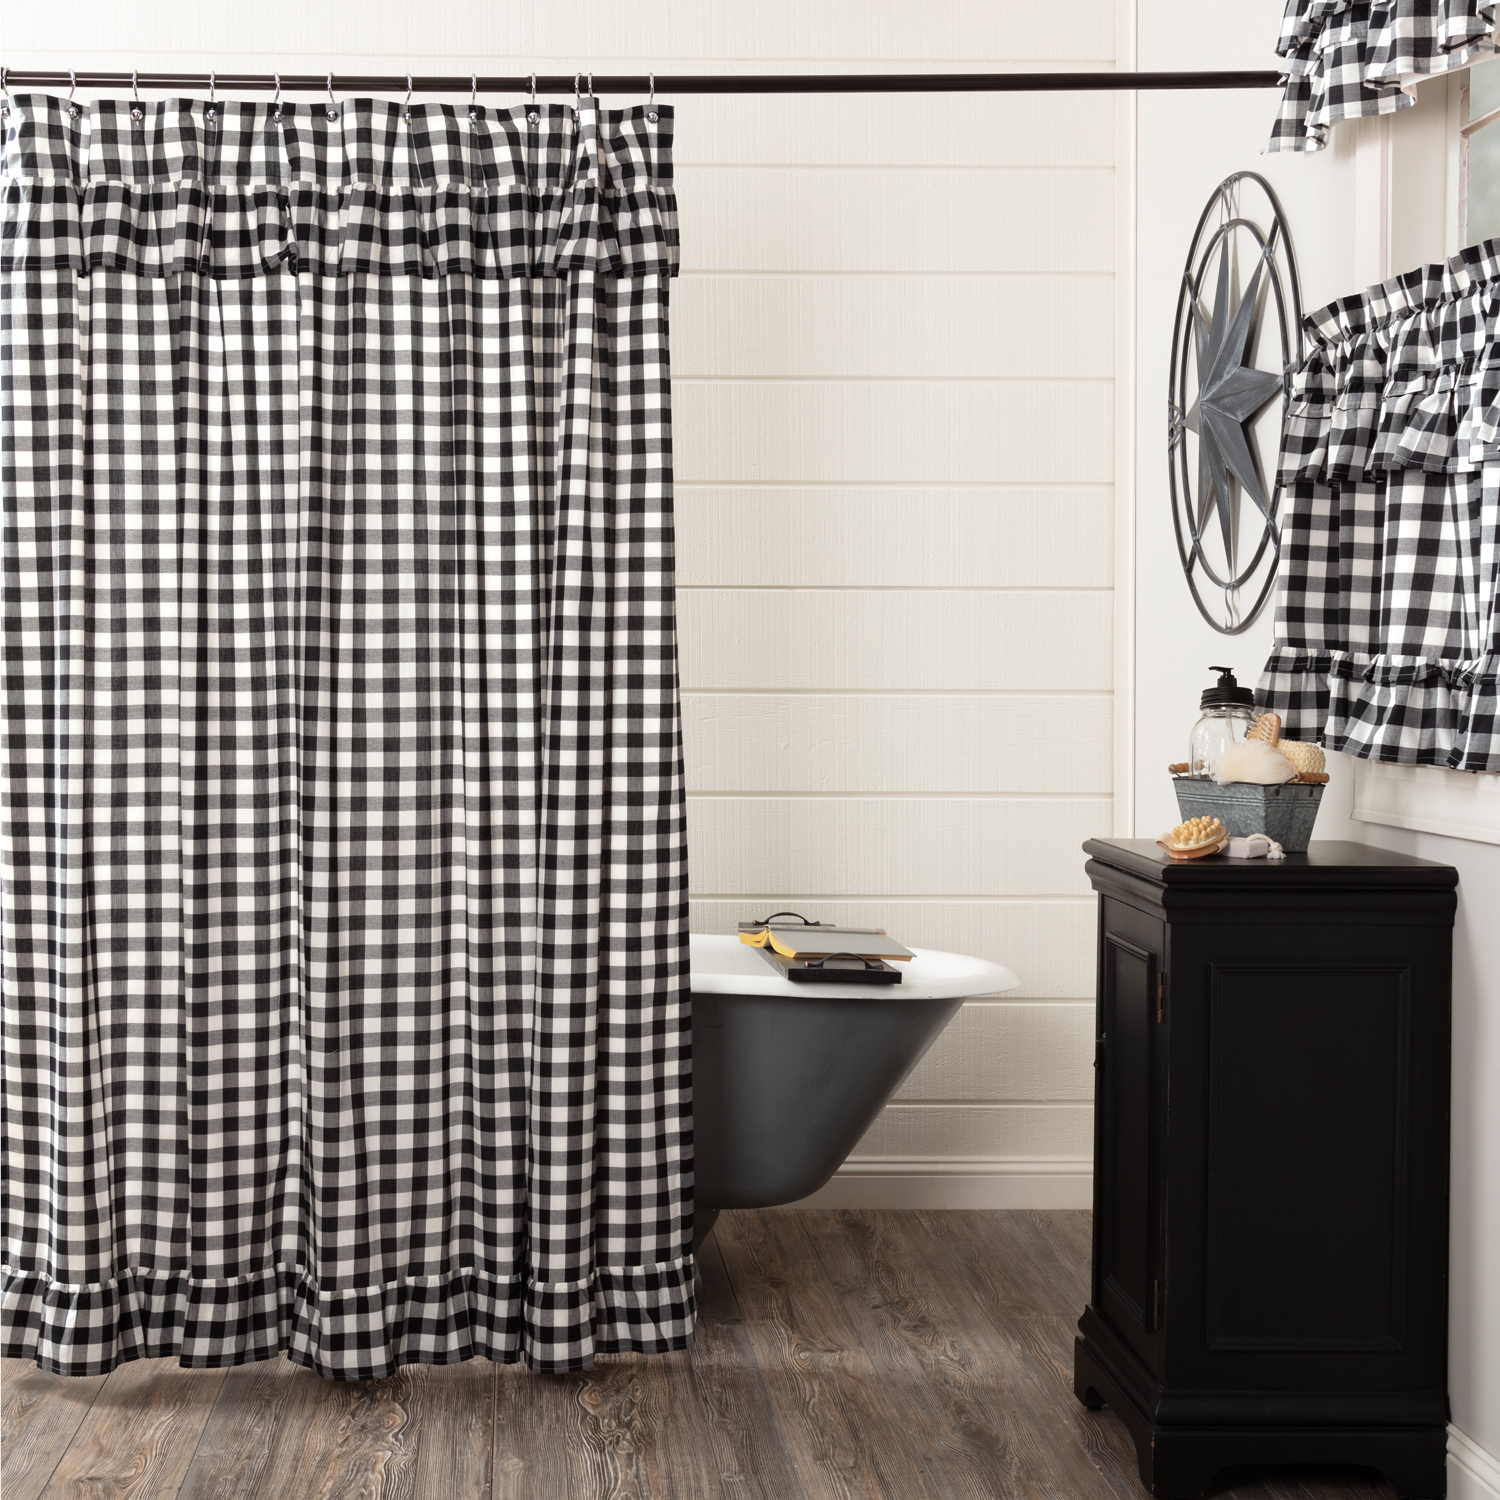 Annie Buffalo Black Check Ruffled Shower Curtain 72x72